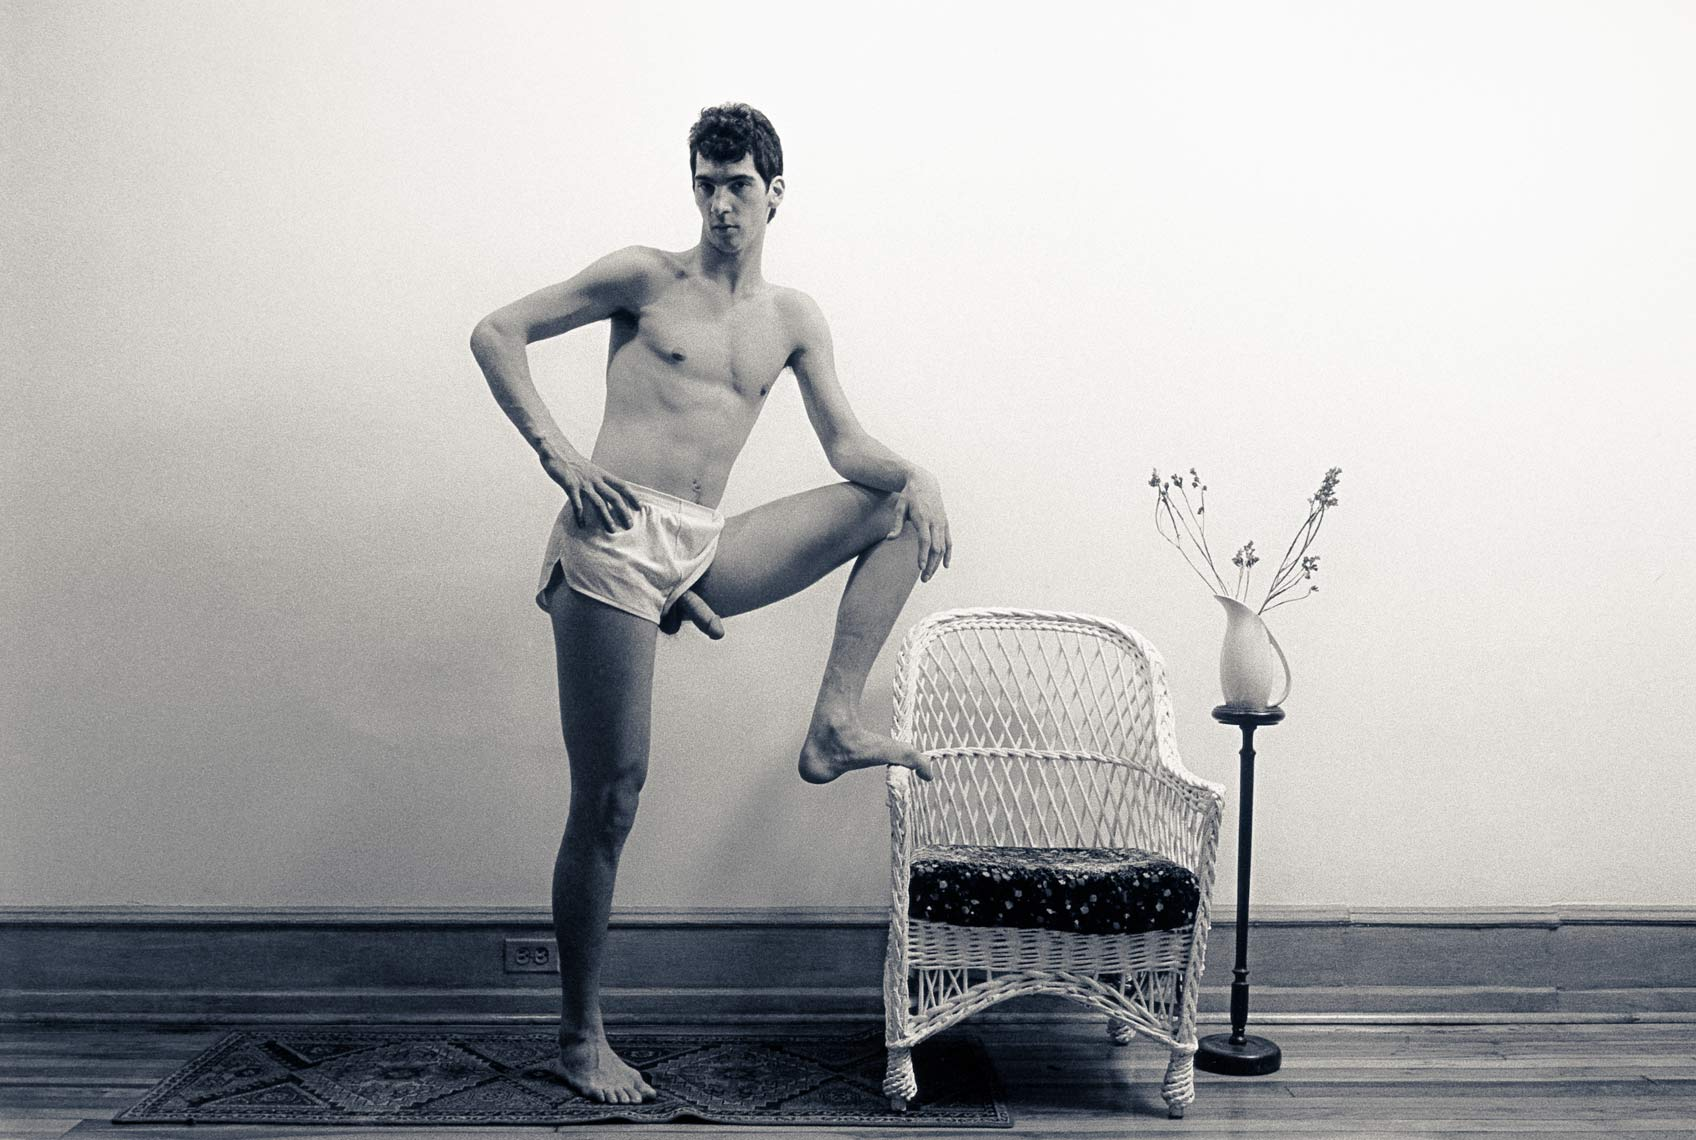 David Lebe; Shorts, 1983, male nude, black and white photograph